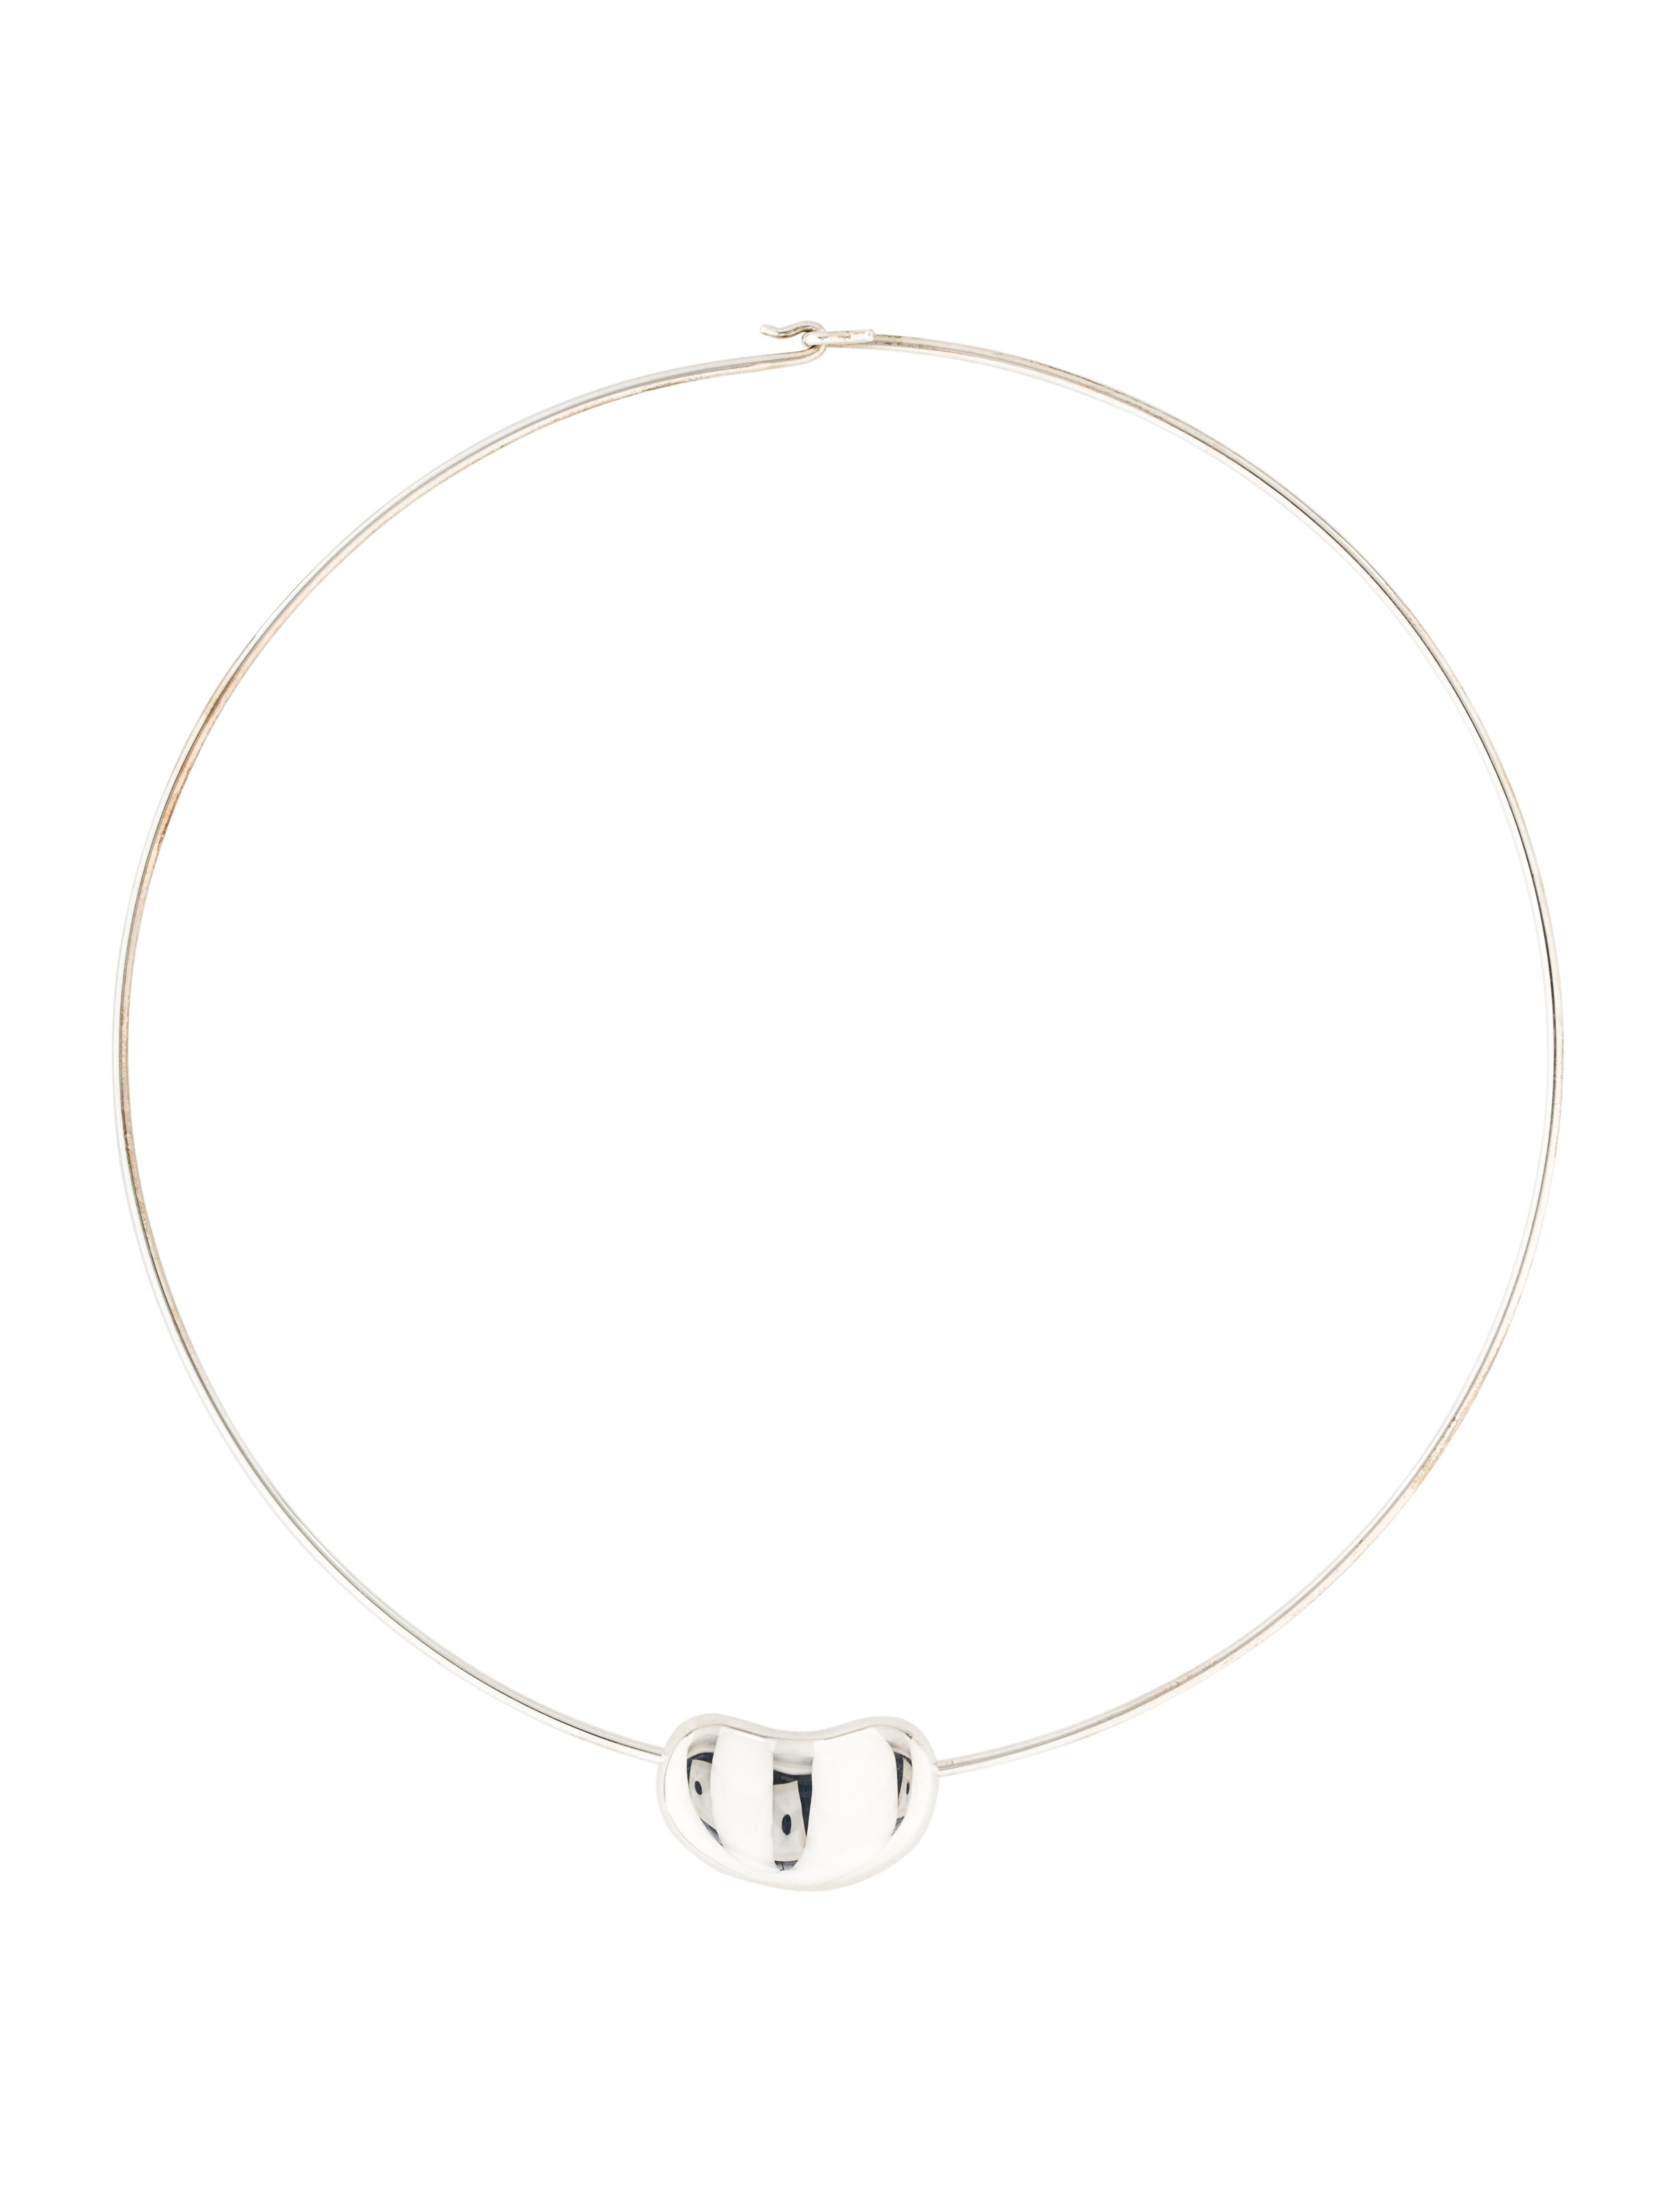 Tiffany & Co. Bean Wire Necklace - Necklaces - TIF50070 | The RealReal